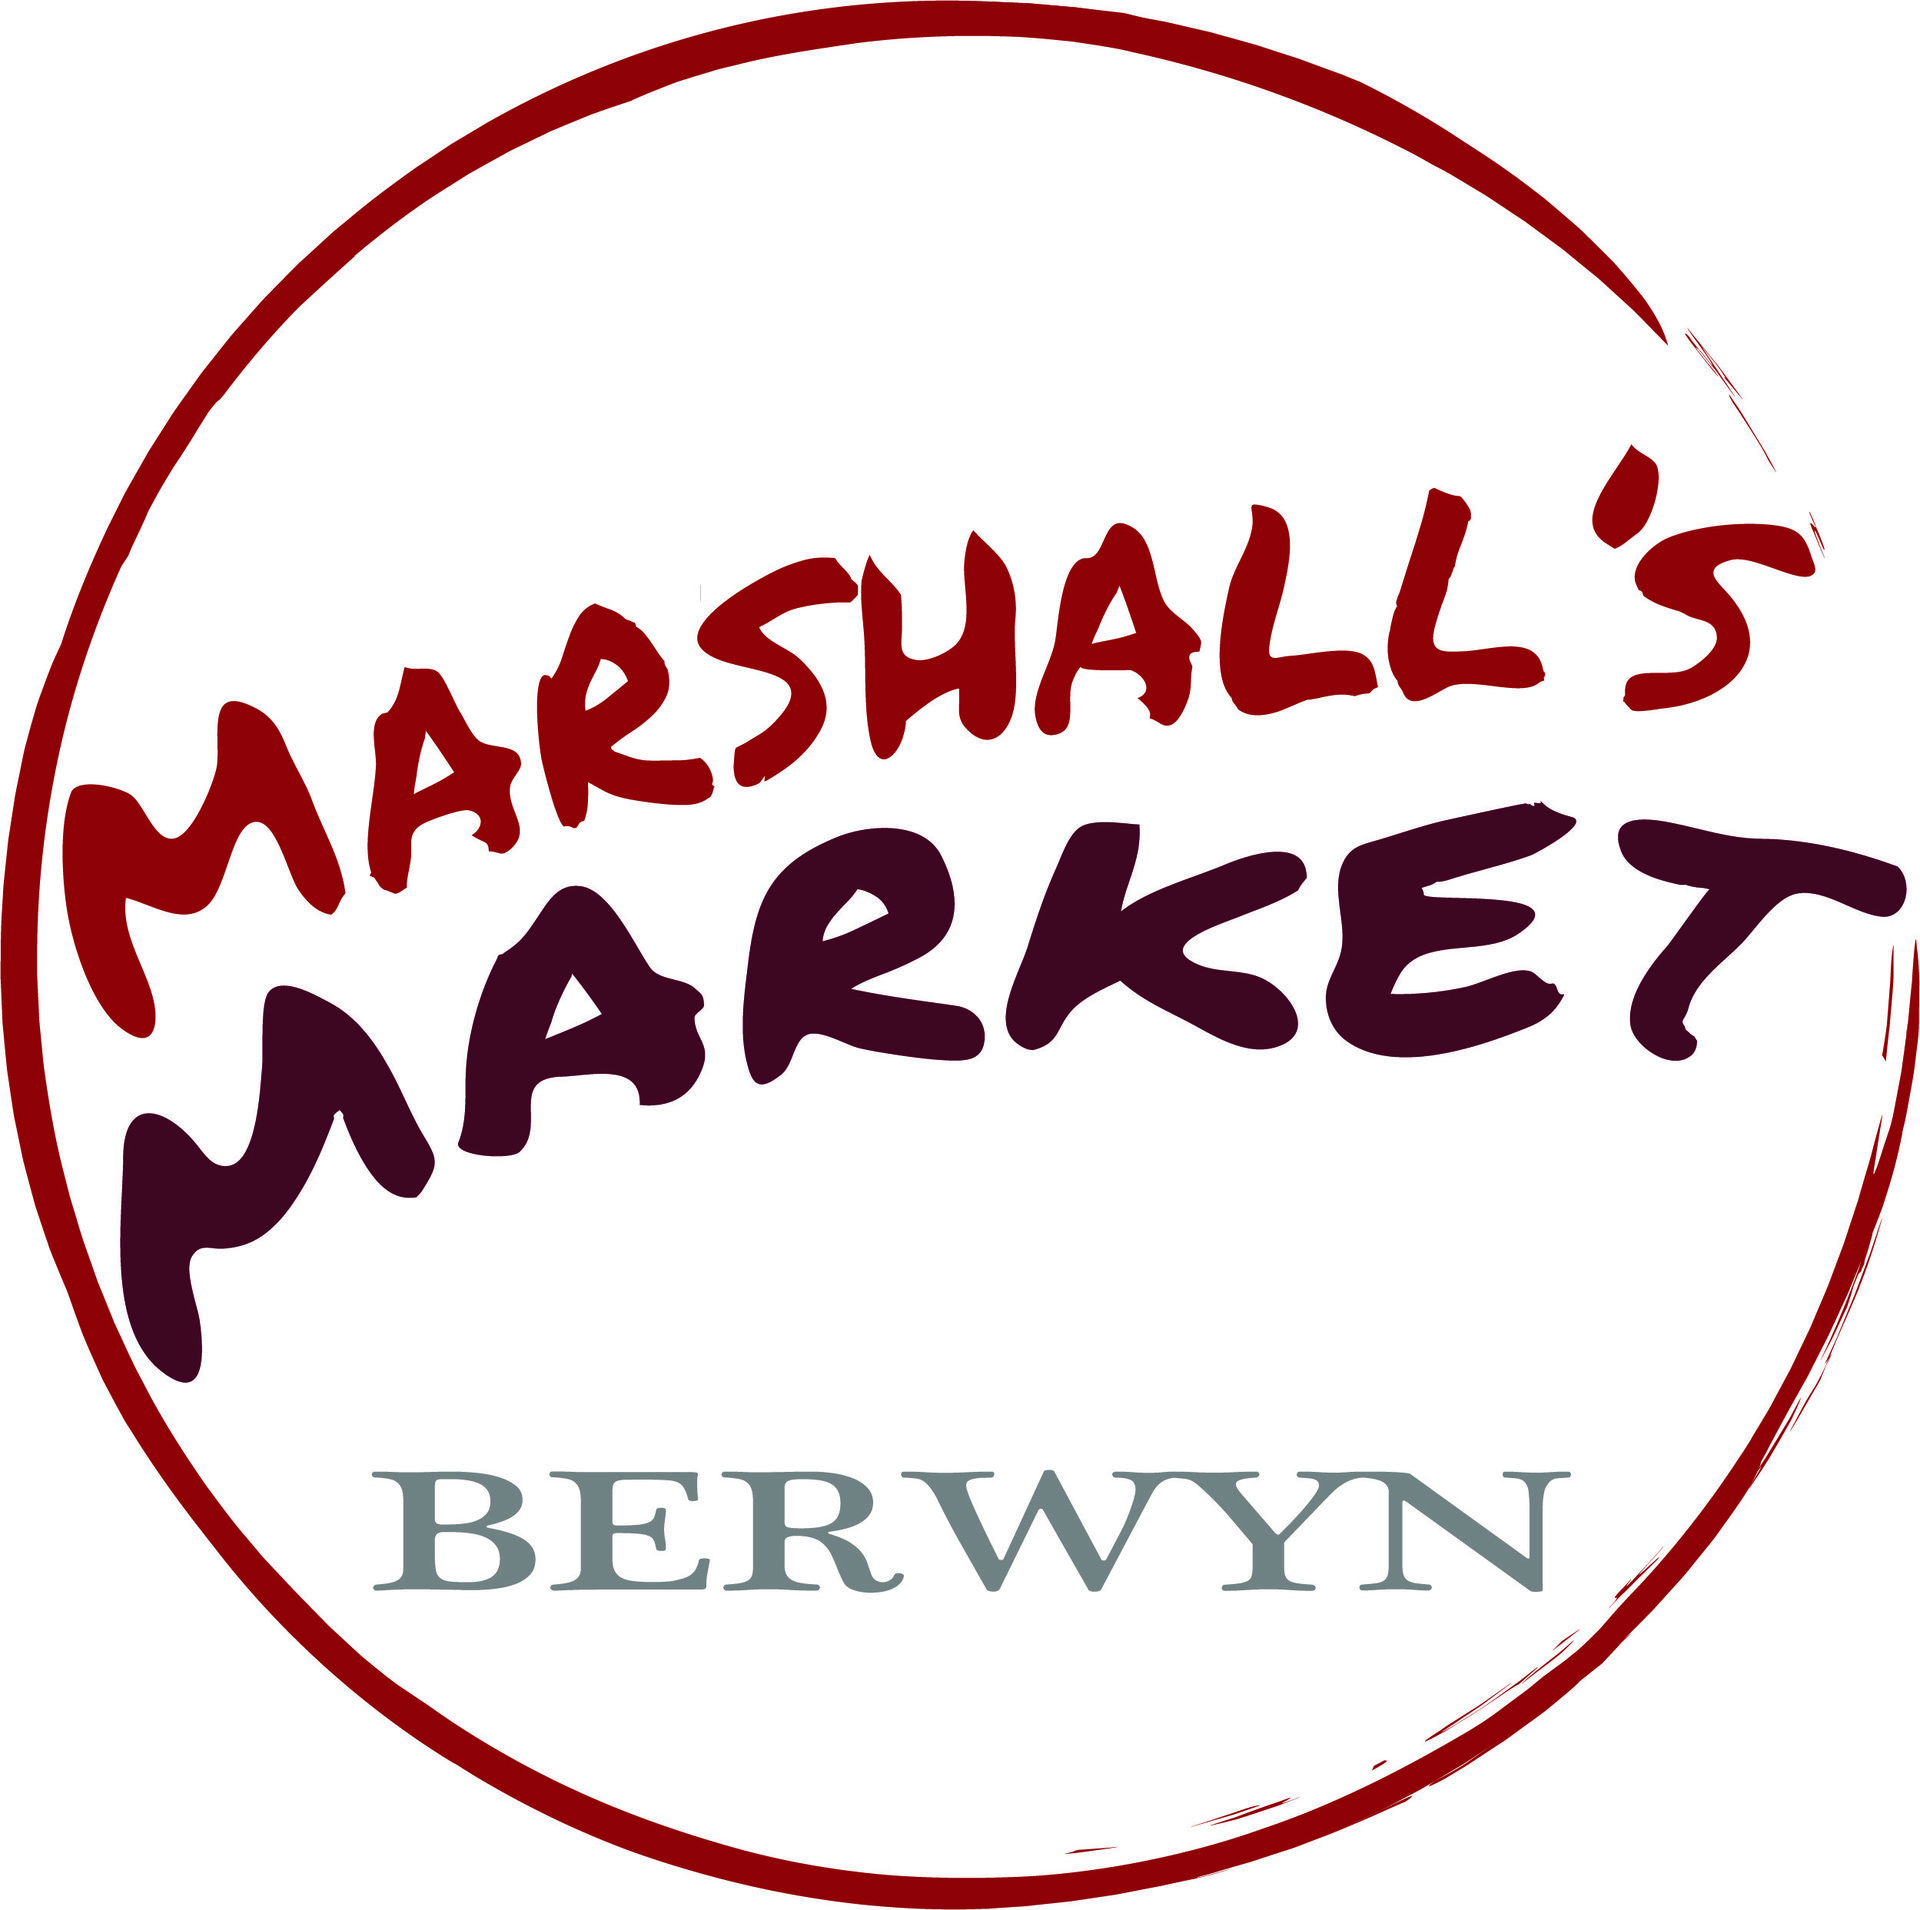 Marshall's Market is serving Berwyn and the Main Line delicious deli